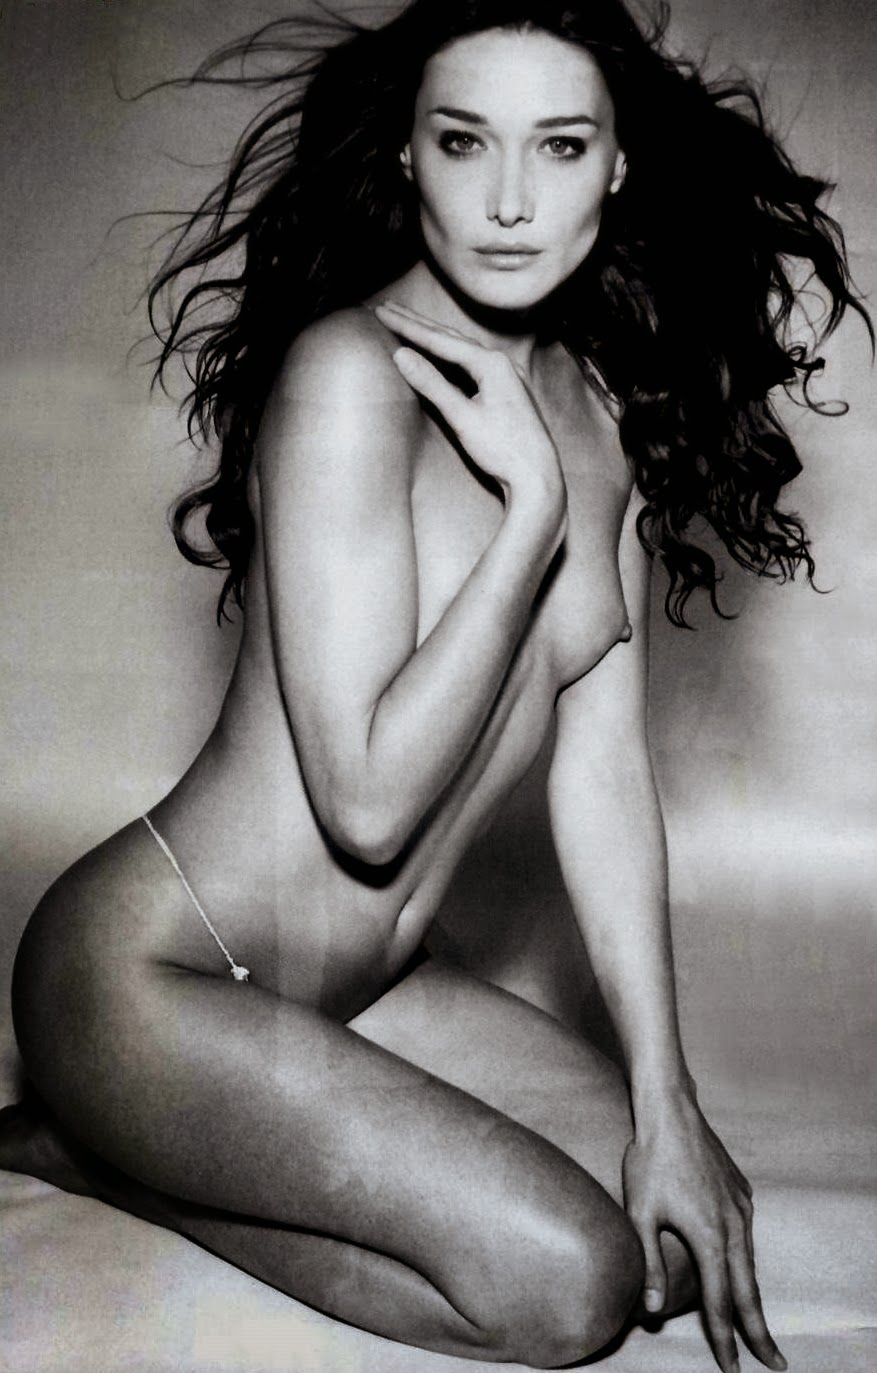 Nude Photo Of Carla Bruni Goes Under The Hammer